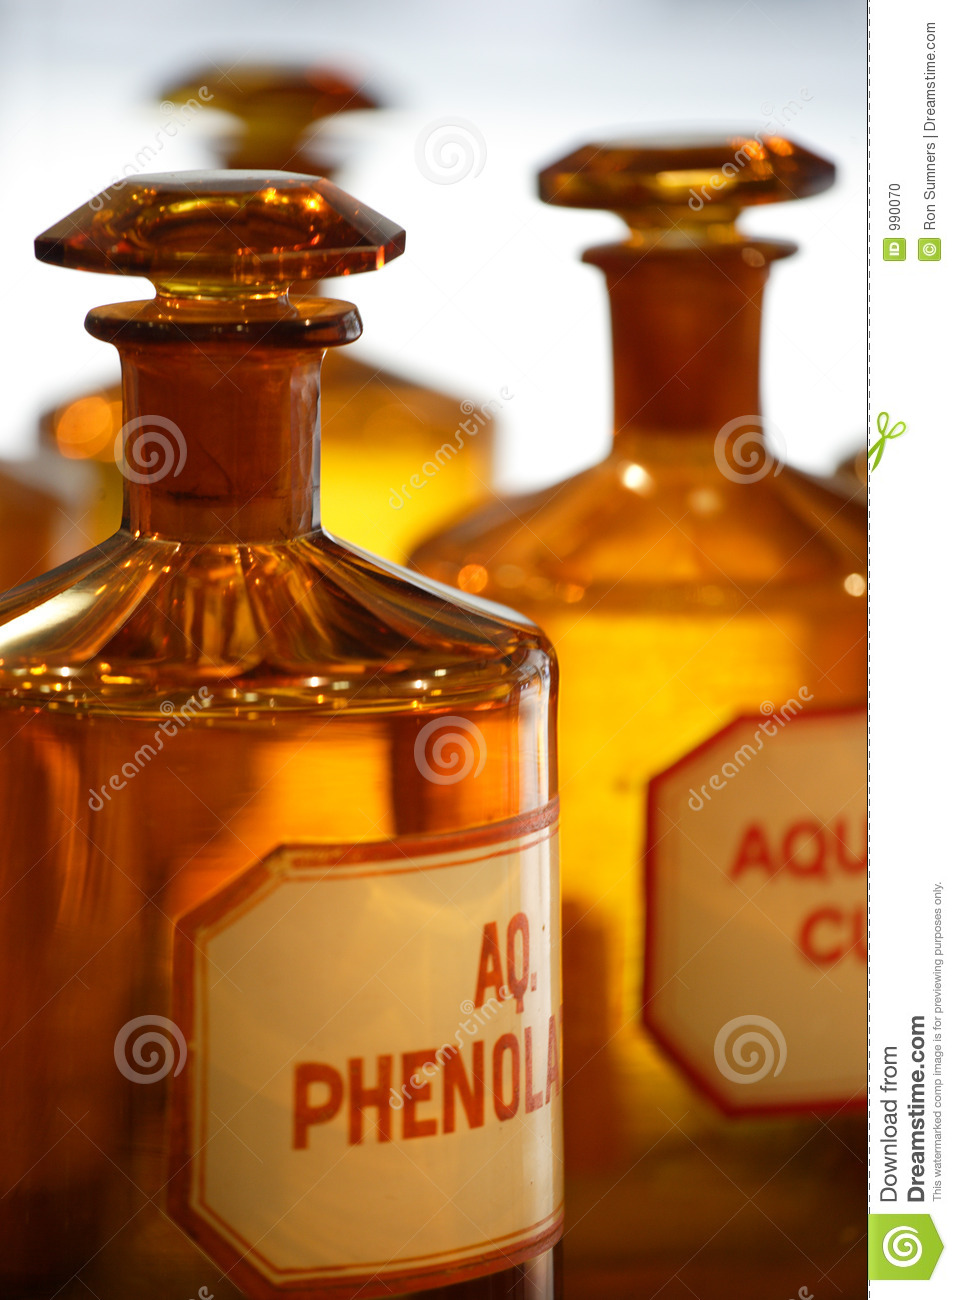 Vintage Pharmacy Bottles Stock Photo Image Of Chemical